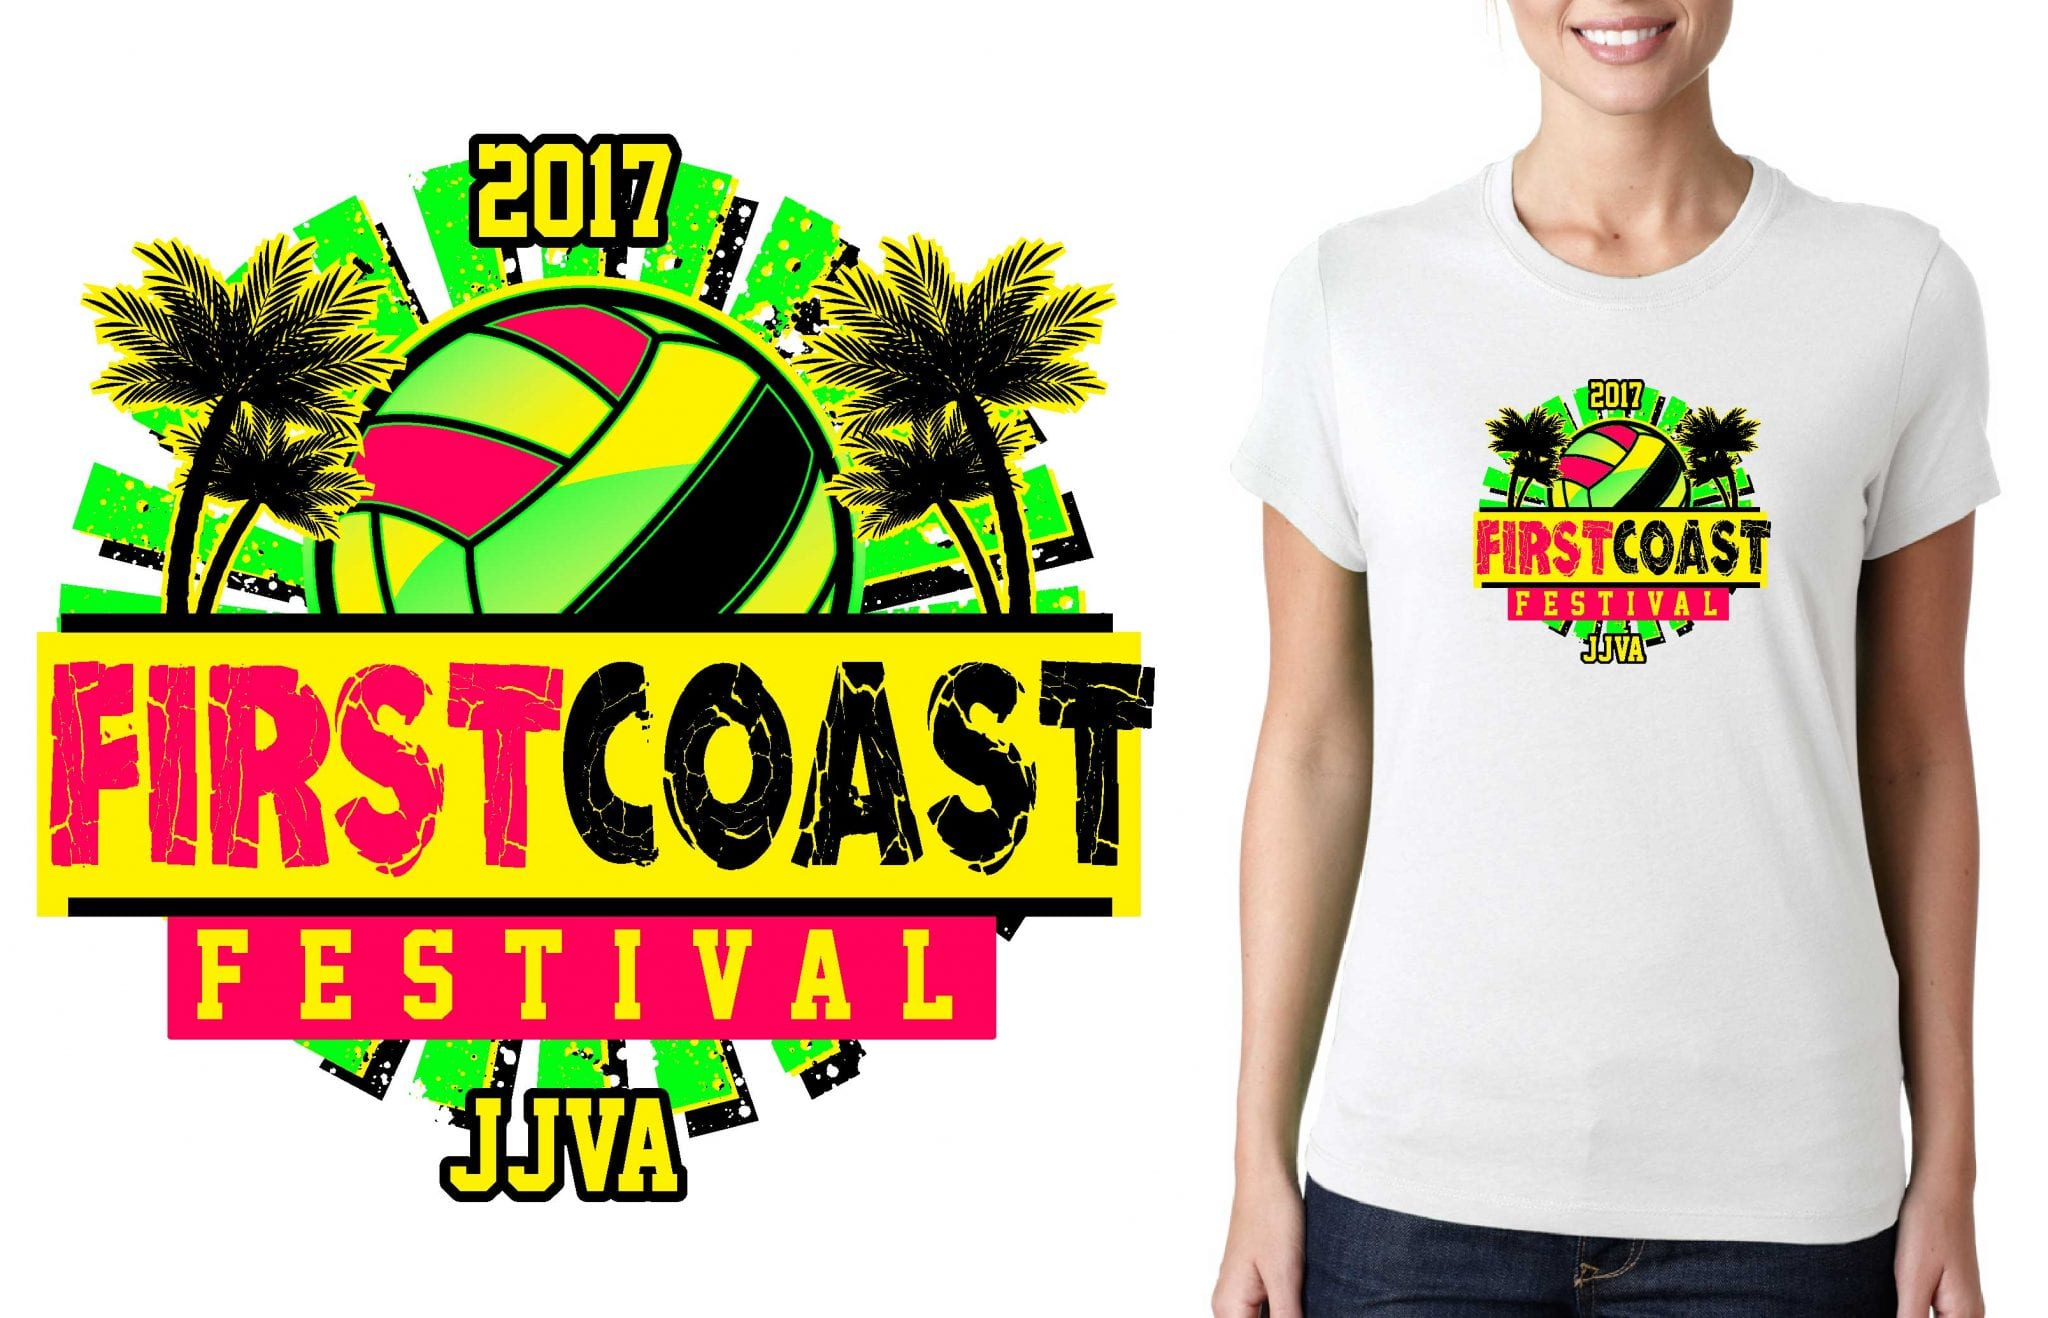 2017 First Coast Festival vector logo design for t-shirt volleyball urartstudio.com